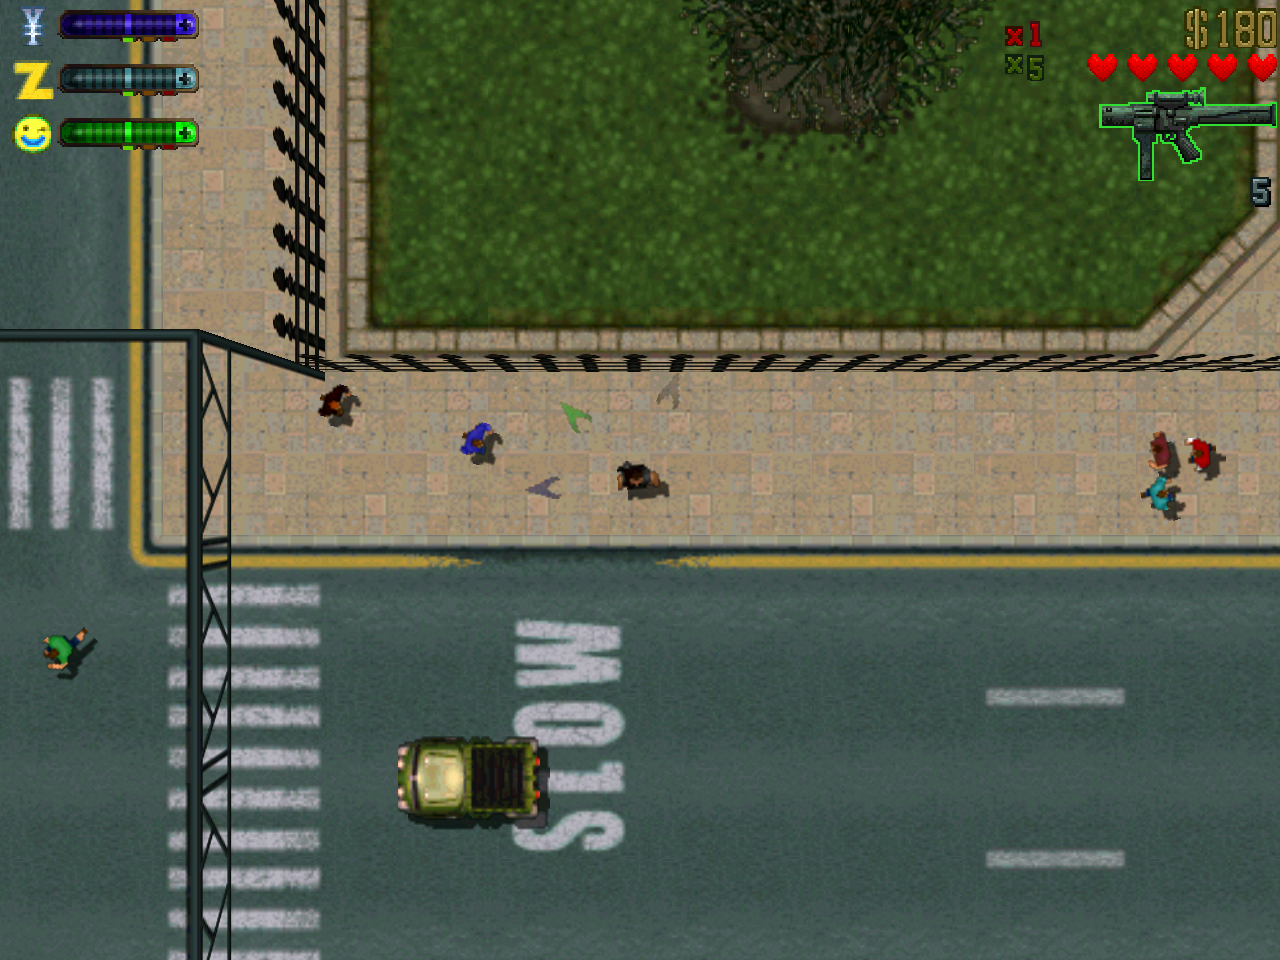 Recrean GTA 2 con un dron